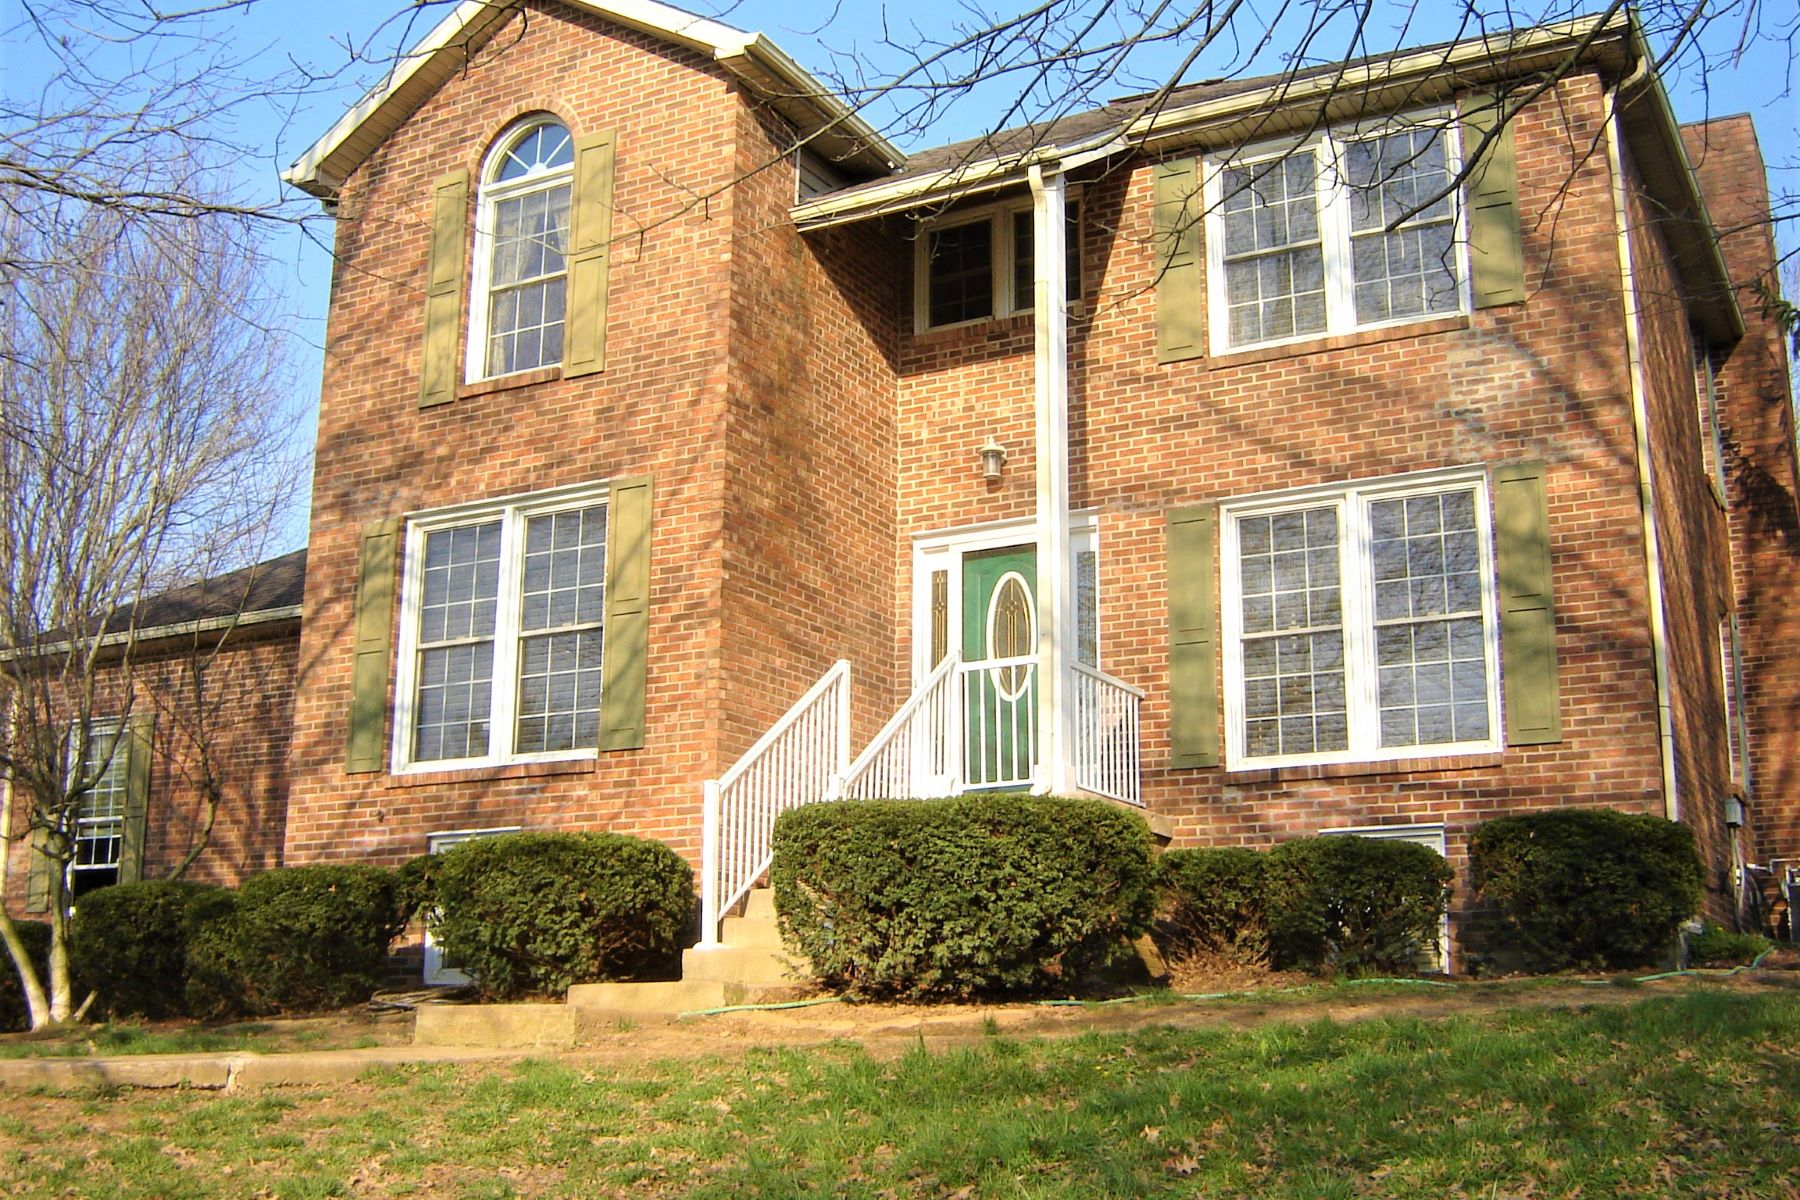 Single Family Home for Sale at 343 College Road 343 College Road Paris, Kentucky 40361 United States